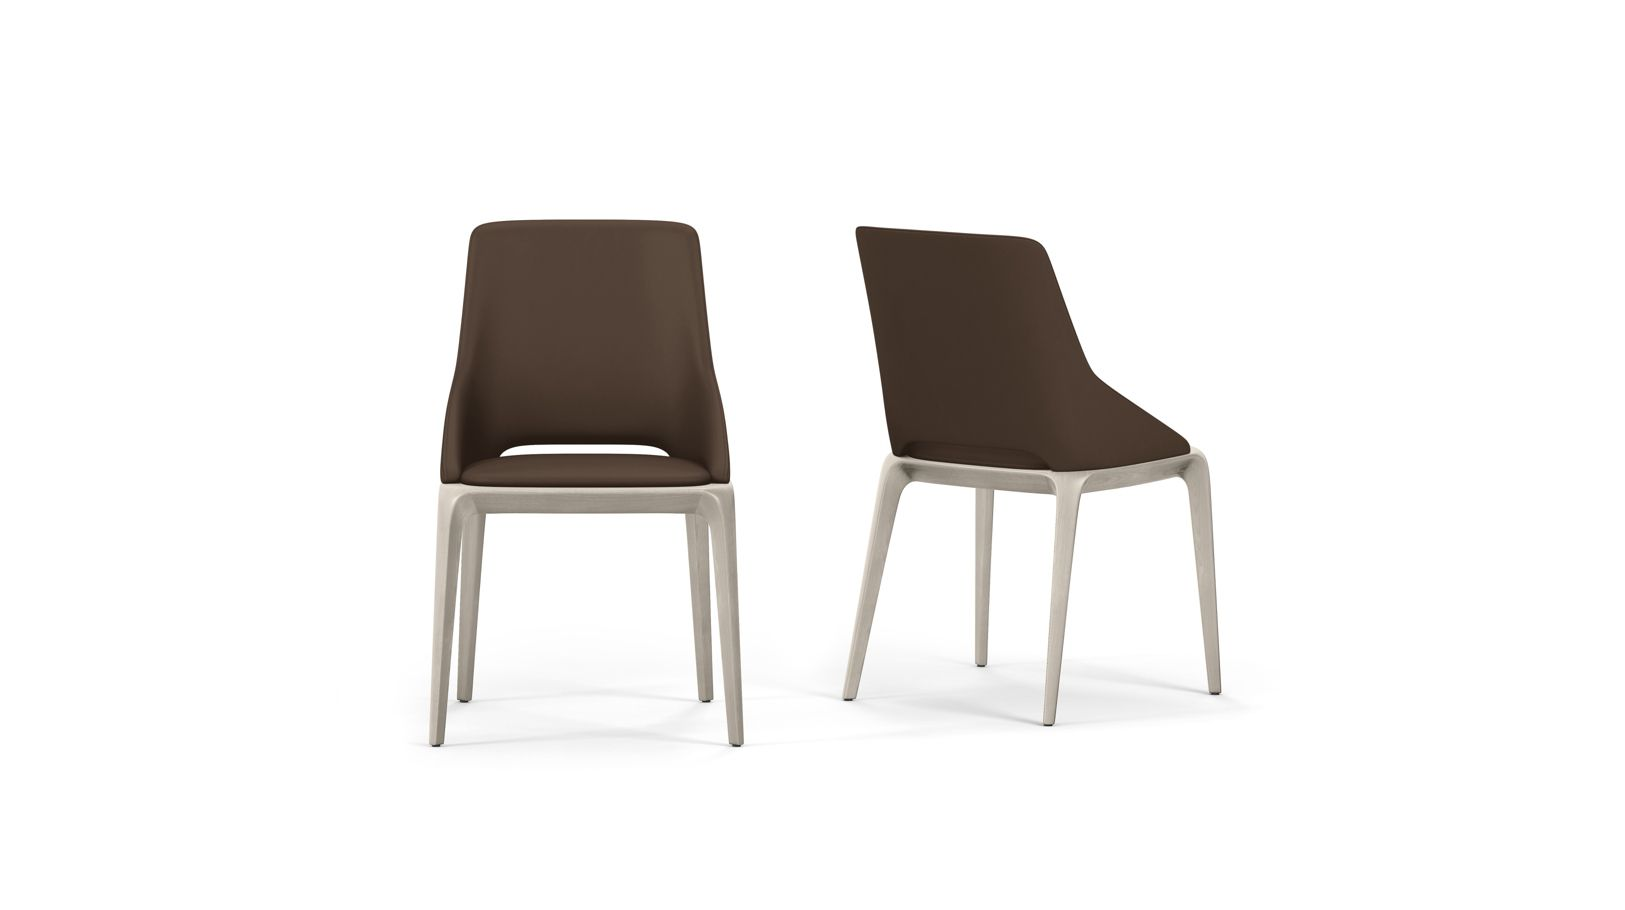 Brio chair roche bobois for Chaise roche bobois